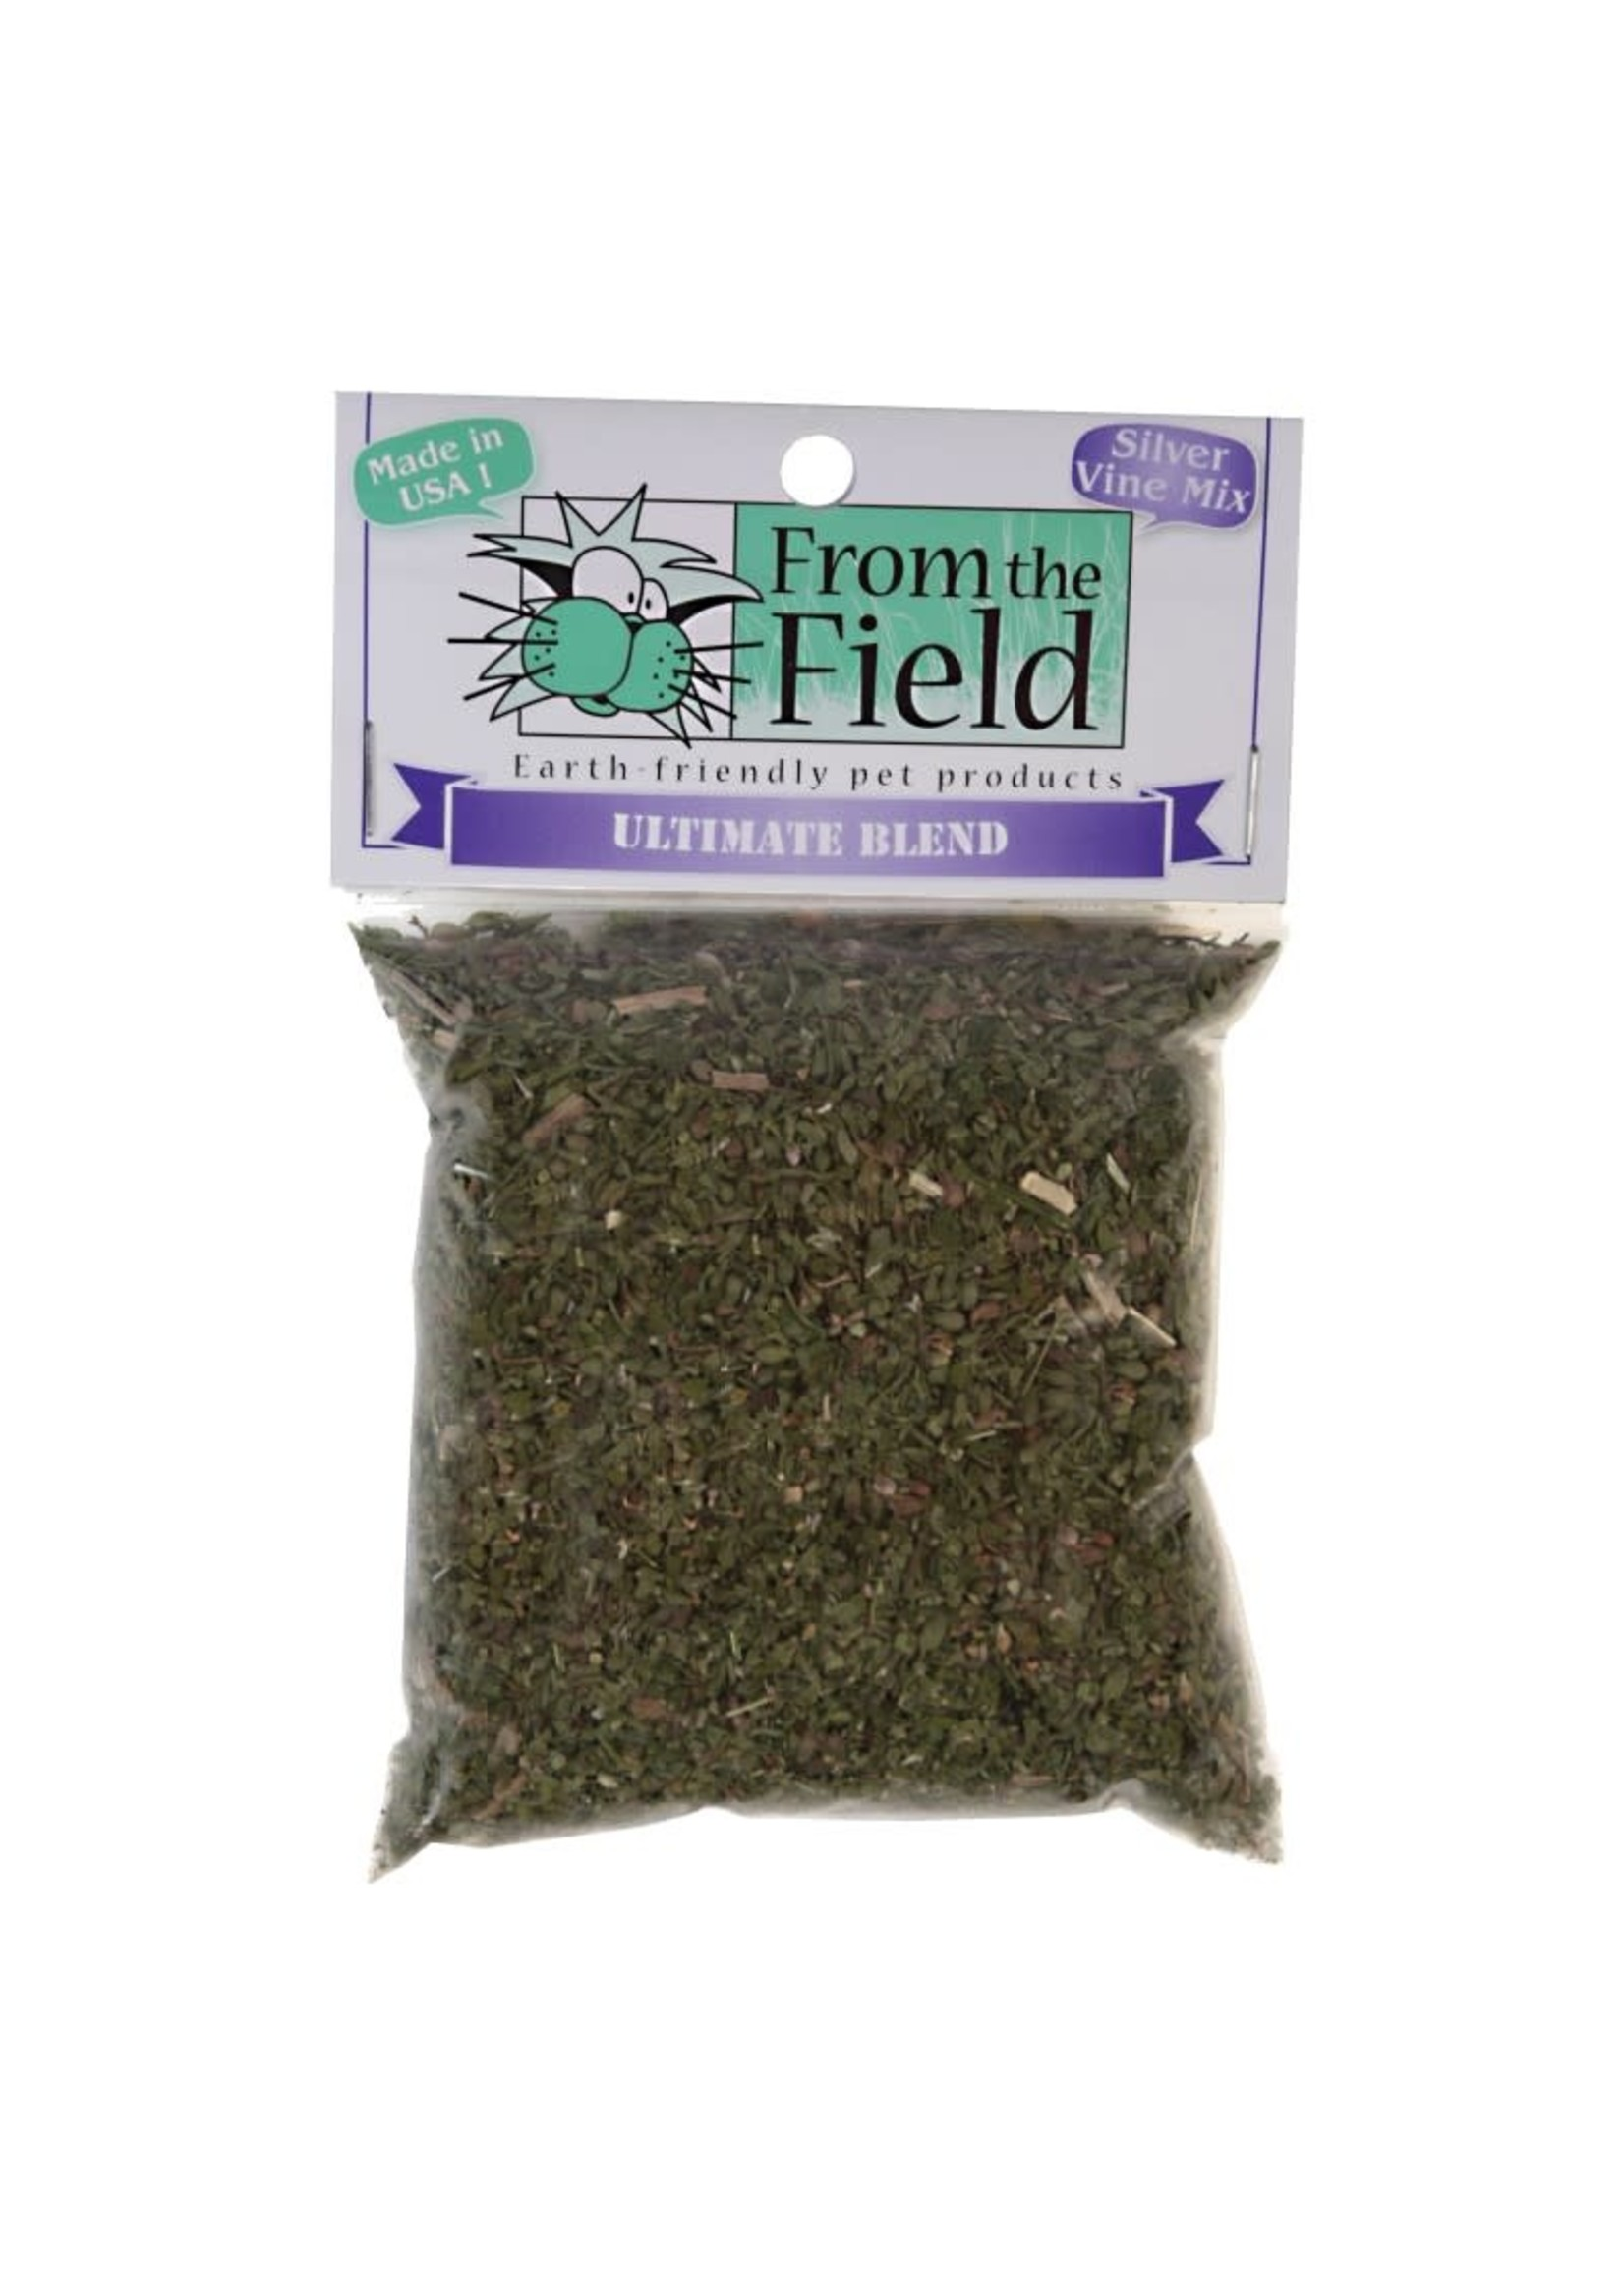 From The Field From the Field Ultimate Blend Silver Vine 0.5 oz